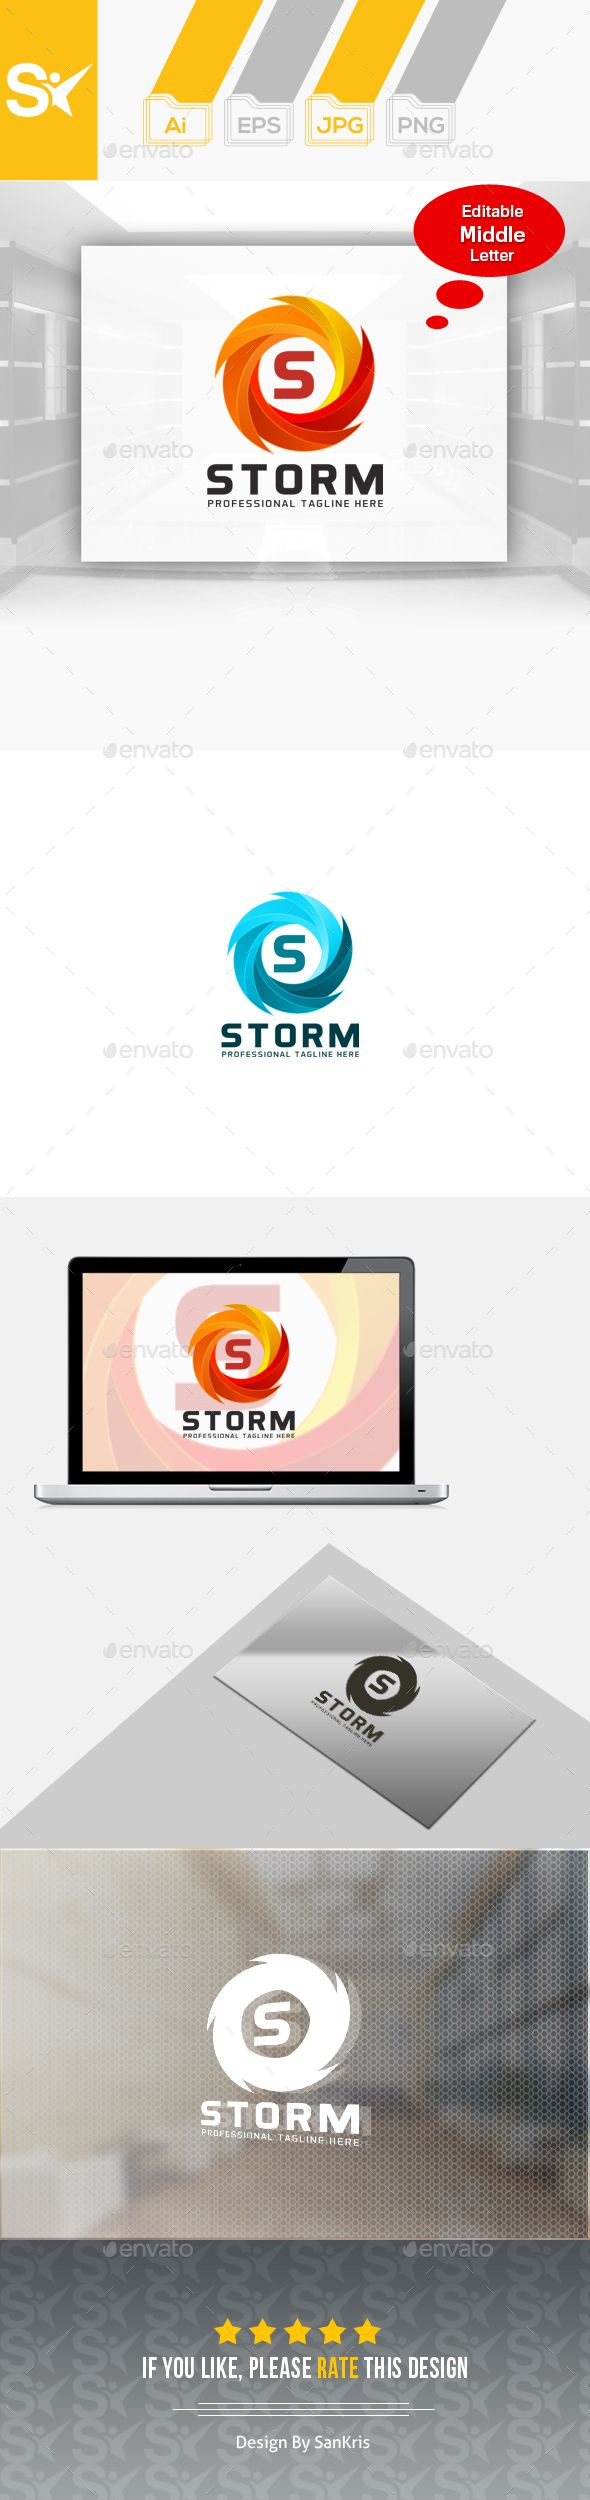 Storm - Logo Design Template Vector #logotype Download it here: http://graphicriver.net/item/storm-logo-template/14648524?s_rank=121?ref=nexion